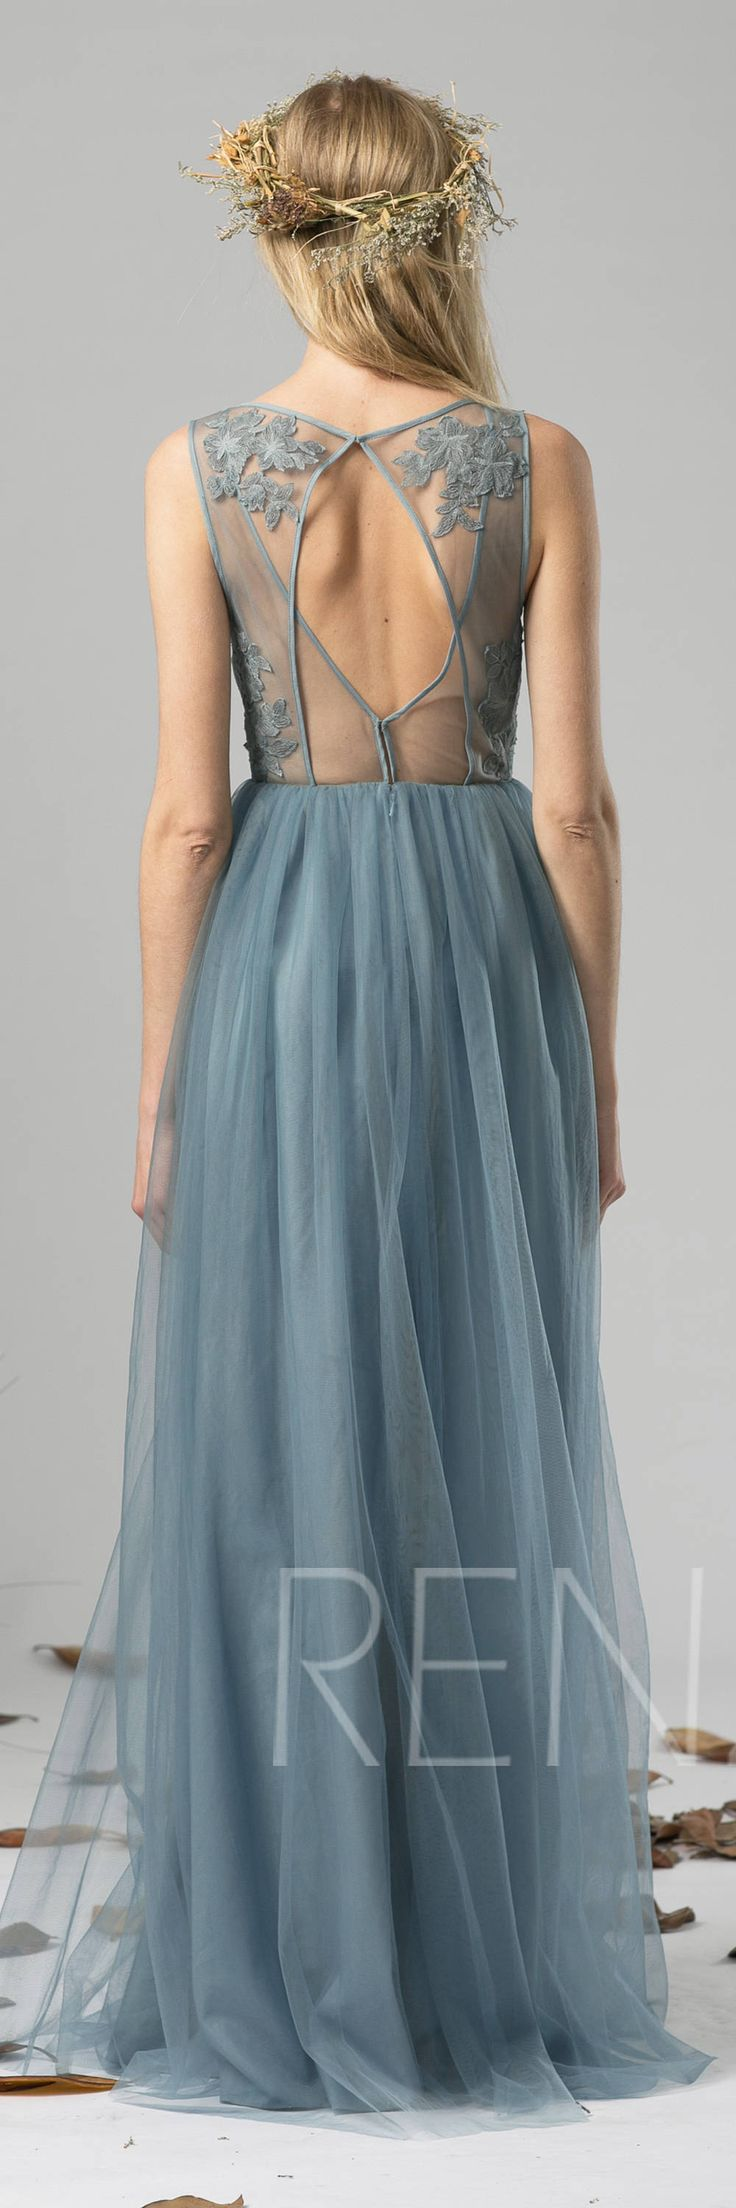 Bridesmaid Dress Dusty Blue Tulle Dress Wedding Dress,Illusion V Neck Maxi Dress,Open Back Lace Party Dress,Sleeveless Evening Dress